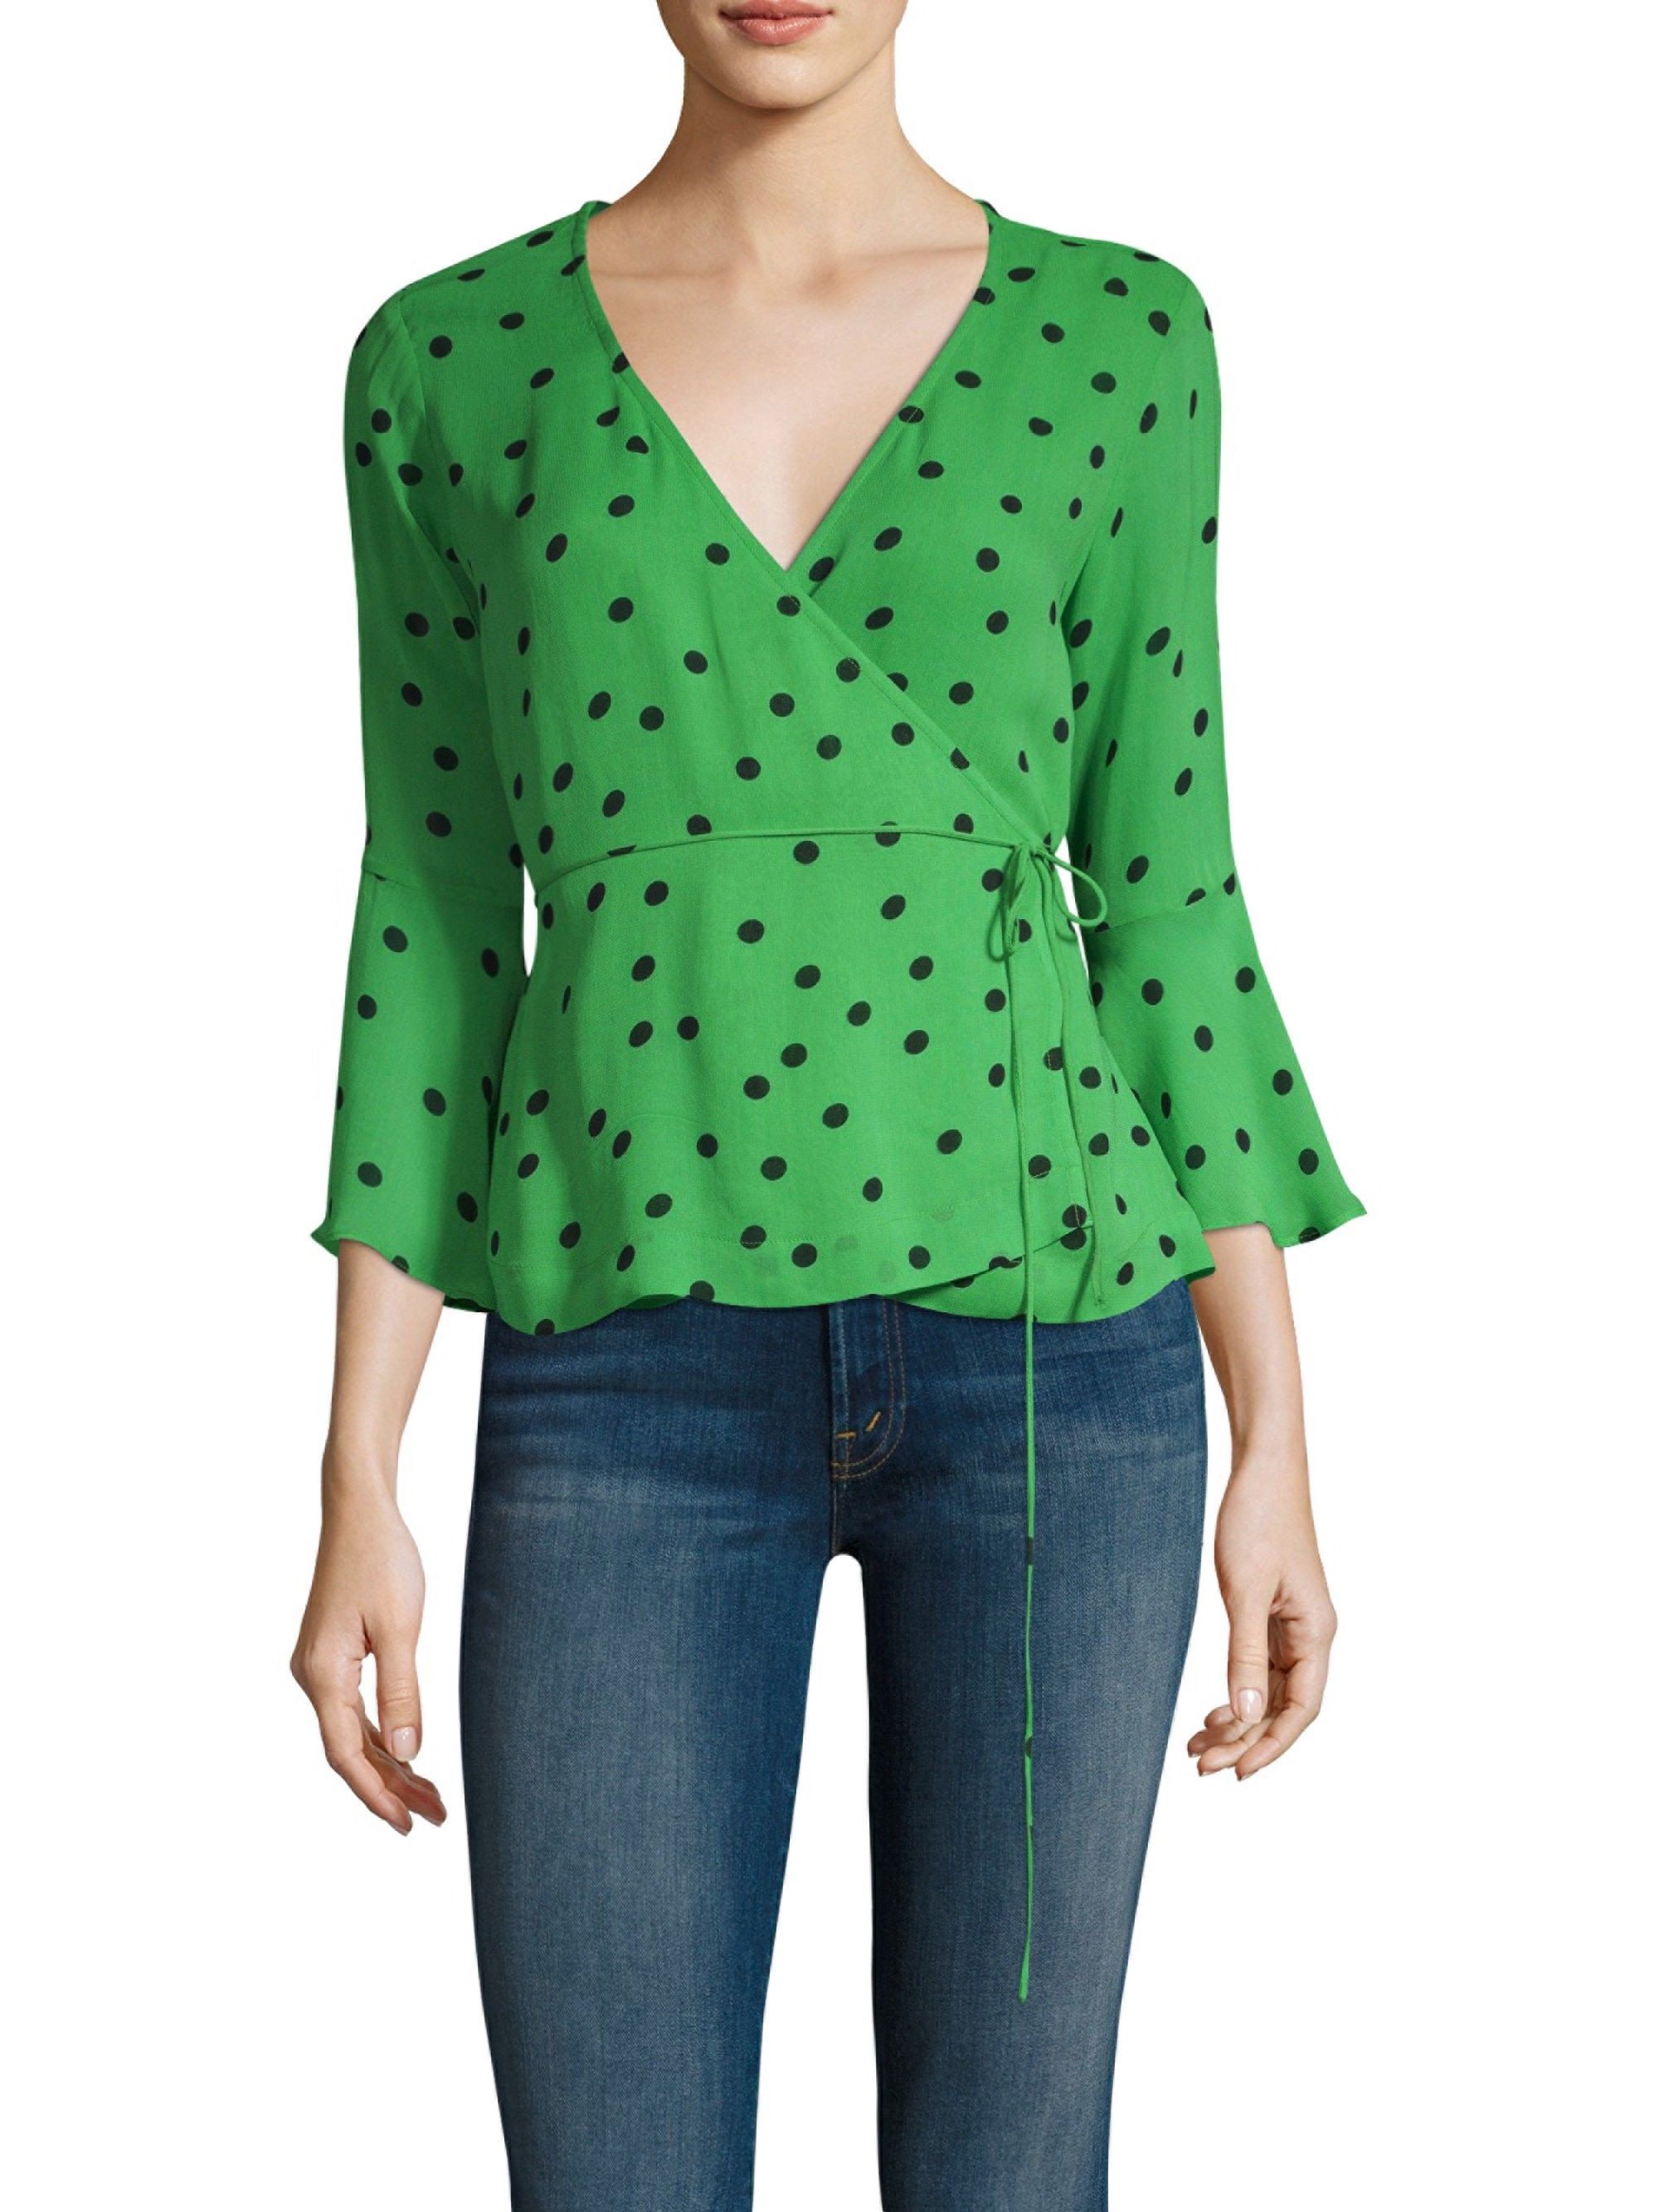 446342f37538a Ganni Polka Dot Wrap Blouse - Classic Green 42 (10) in 2019 ...